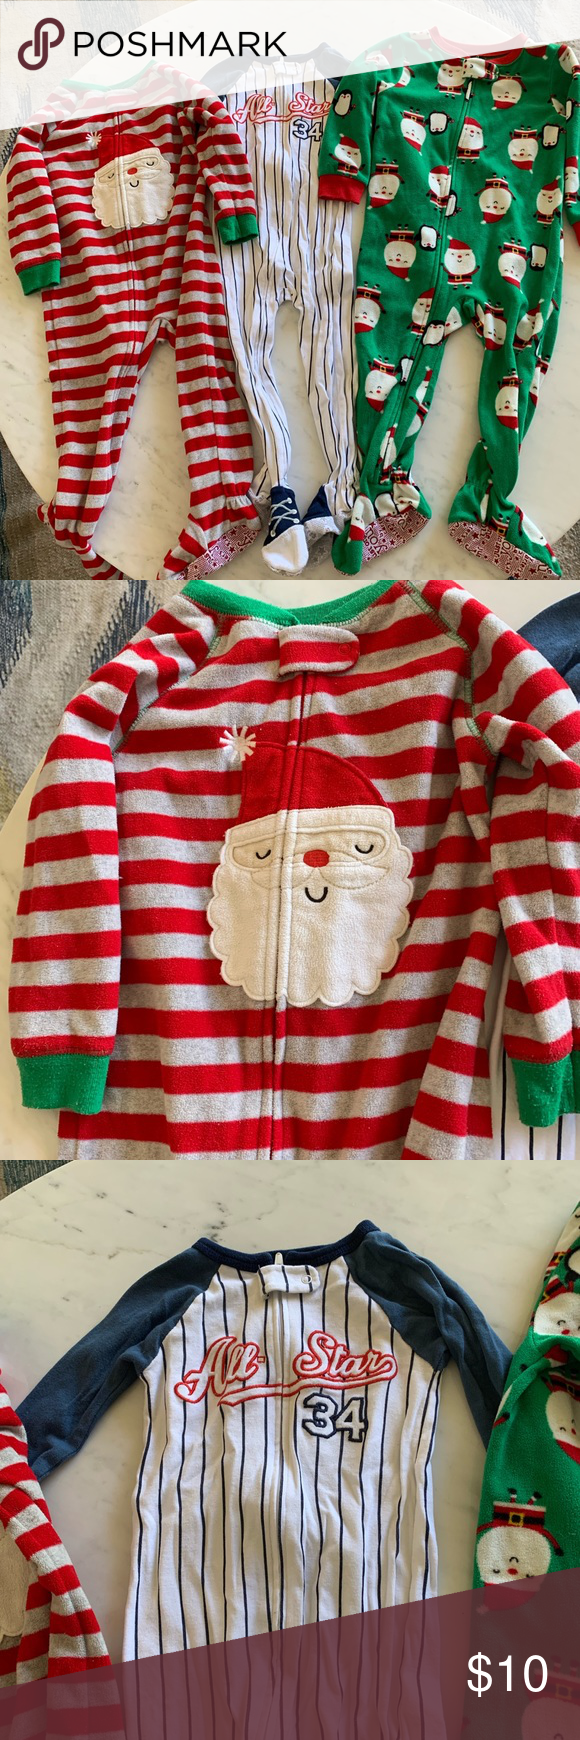 3 For 10 Sale Baby Boy S Pajamas 24mo 2t Three Pairs Of Baby Pajamas The Two Holiday Jammies Are 2t And The Ba Baseball Outfit Baby Boy Pajamas Pajamas